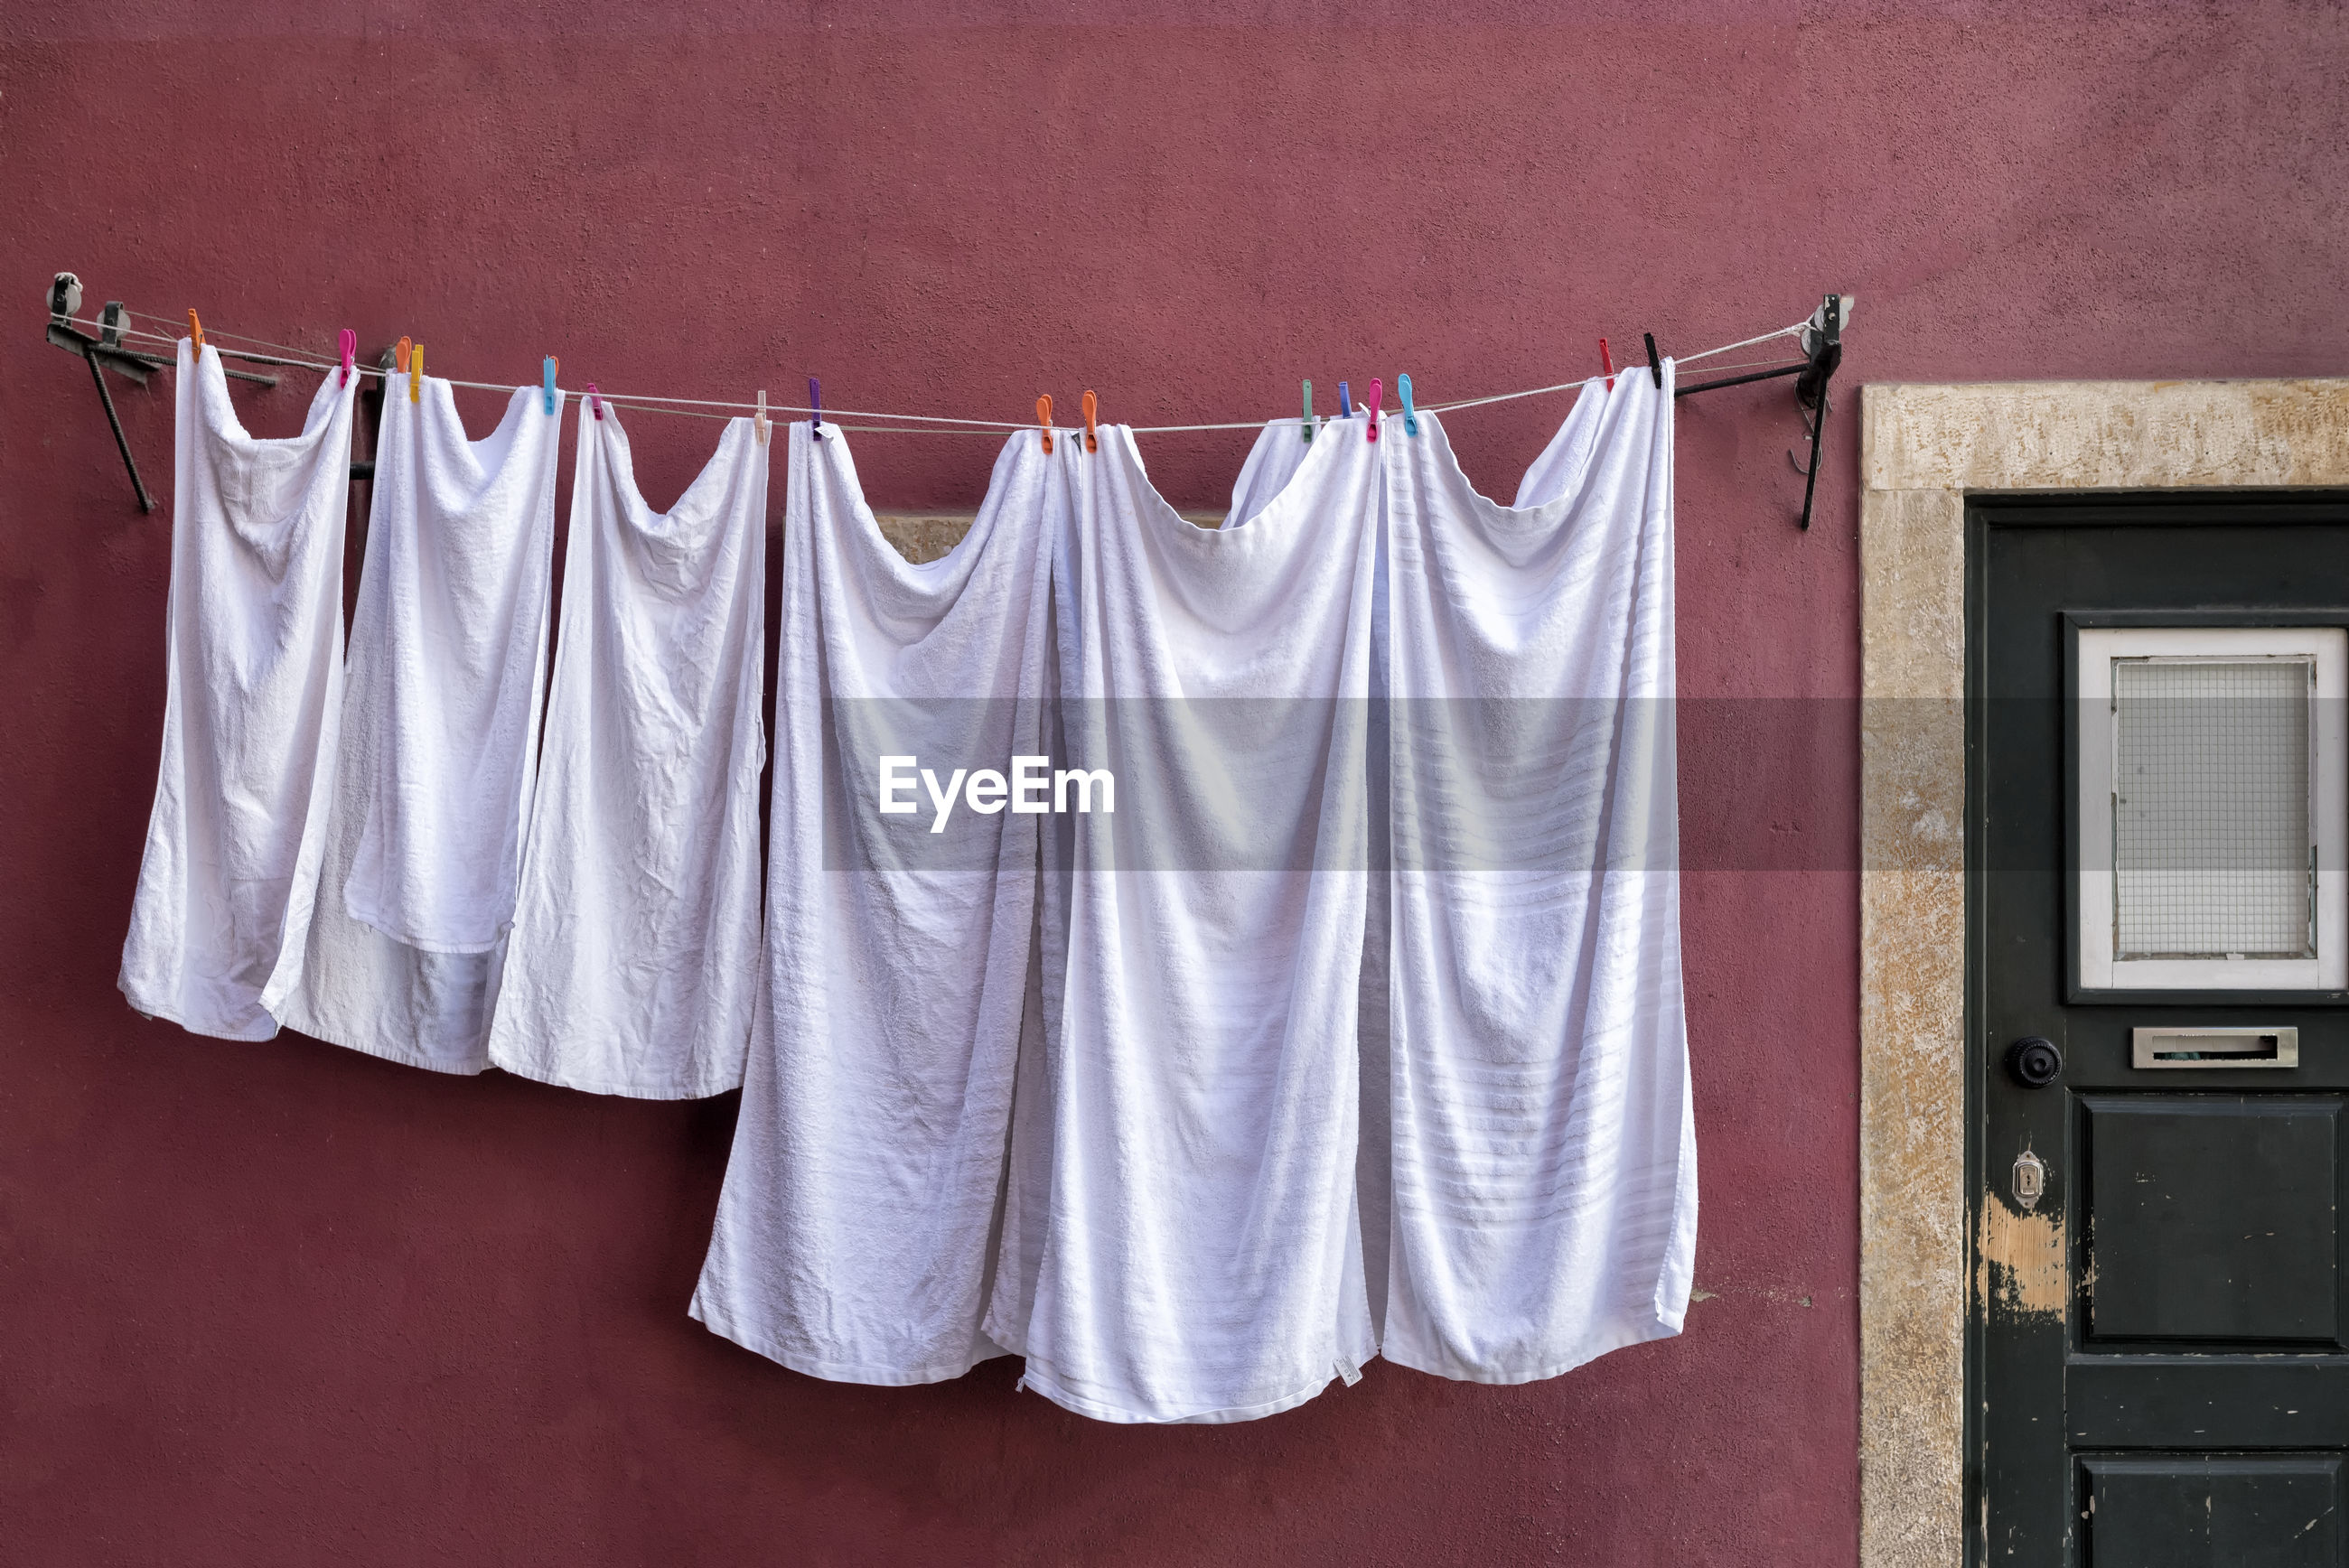 Close-up of clothes drying against wall